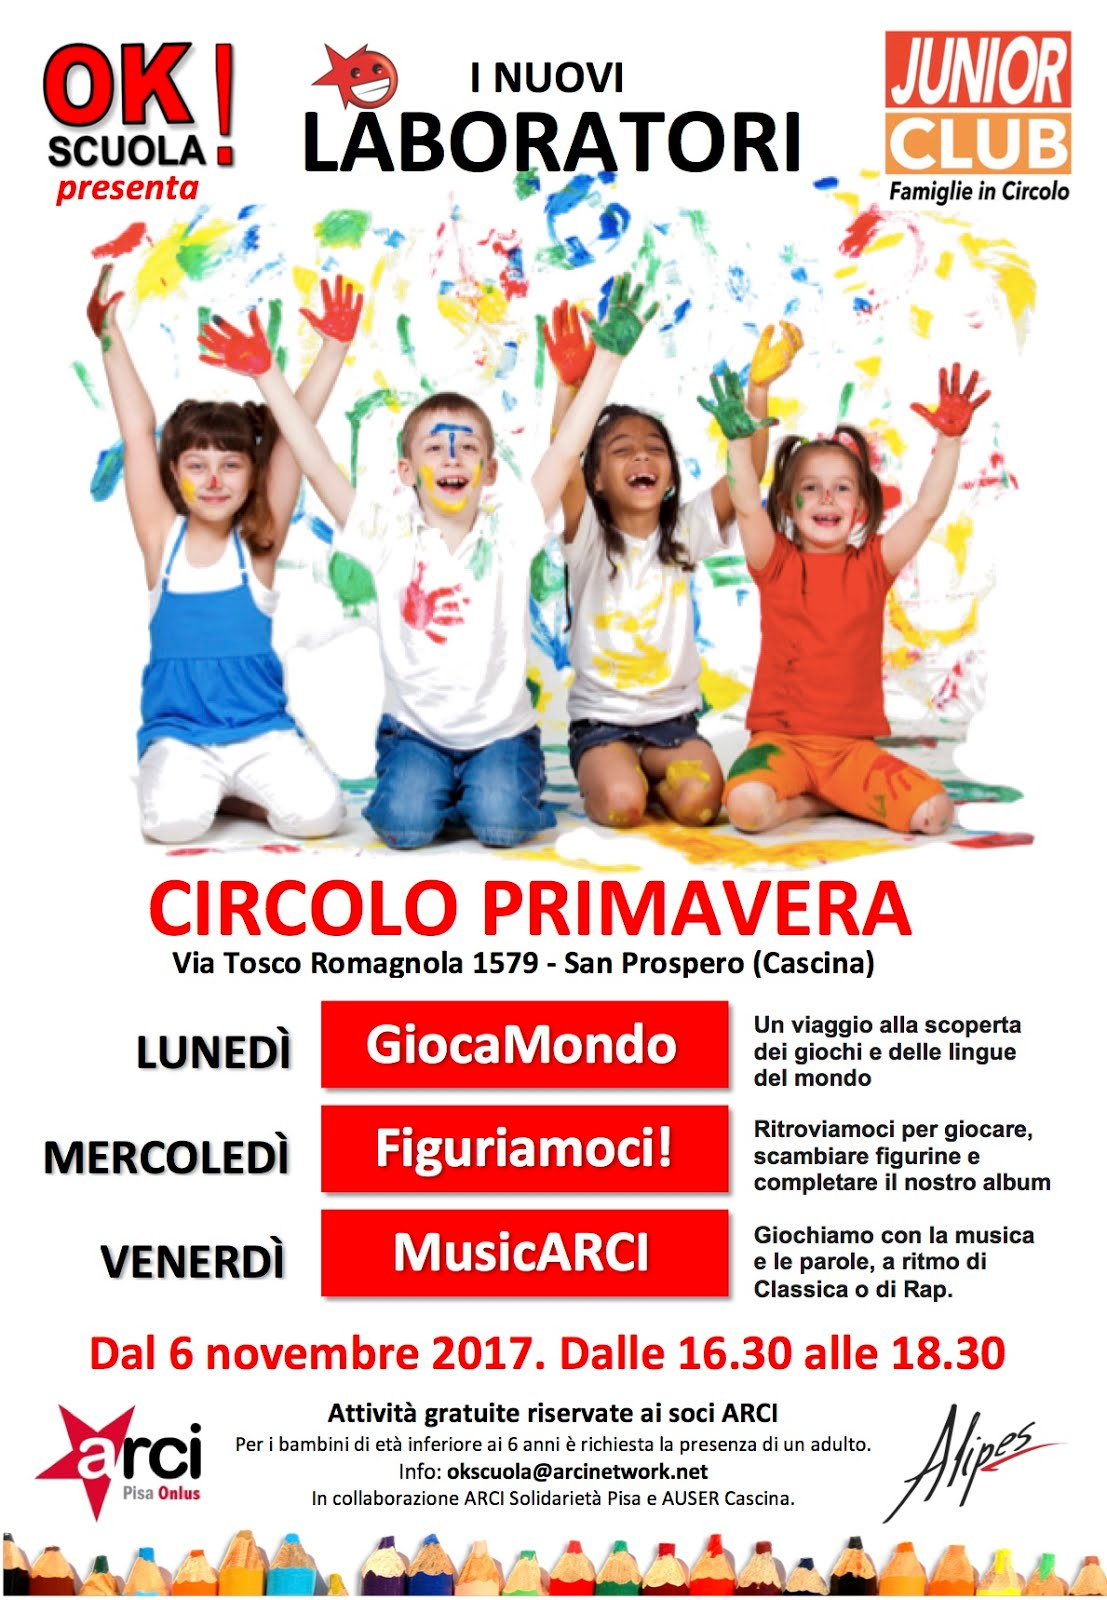 JUNIOR CLUB: LA LUDOTECA ARCI